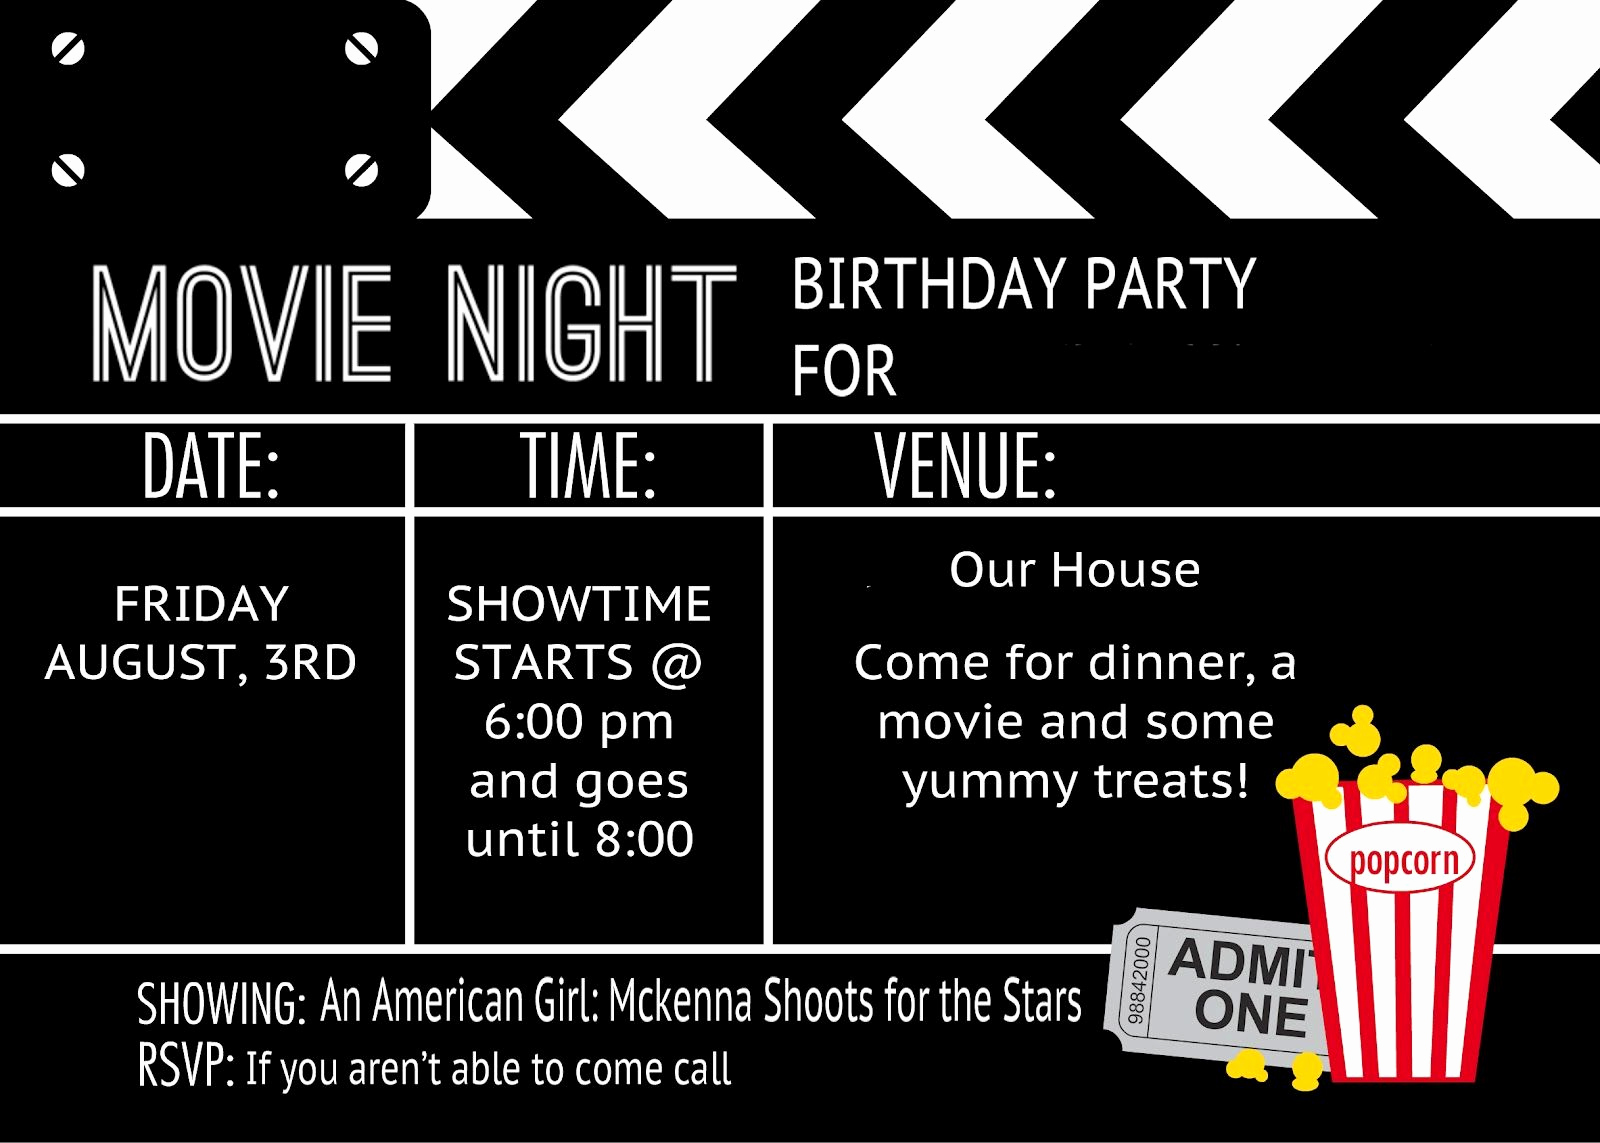 Movie Night Invitation Templates New Cool Black and White Movie themed Birthday Party